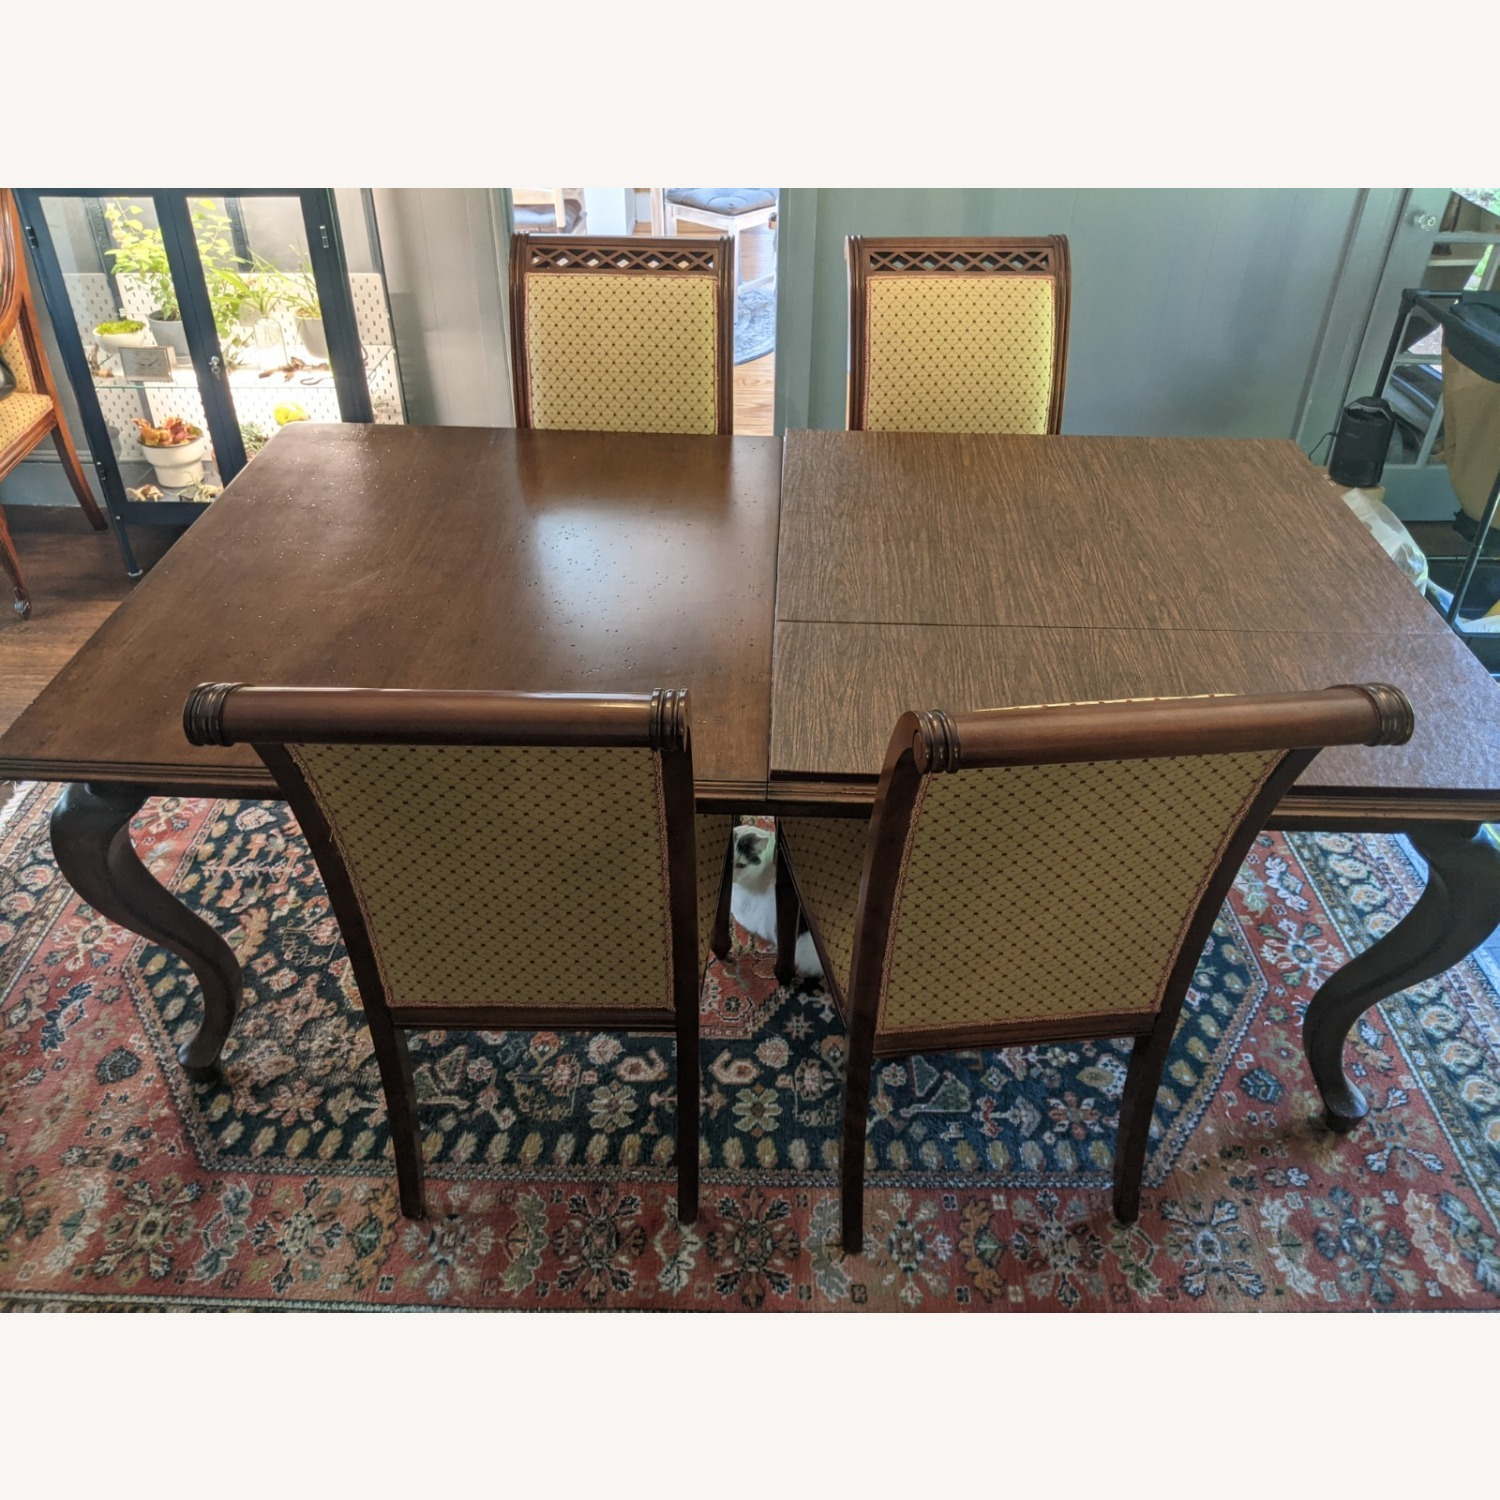 Queen Anne-style Table with Leaves and Table Pad - image-5